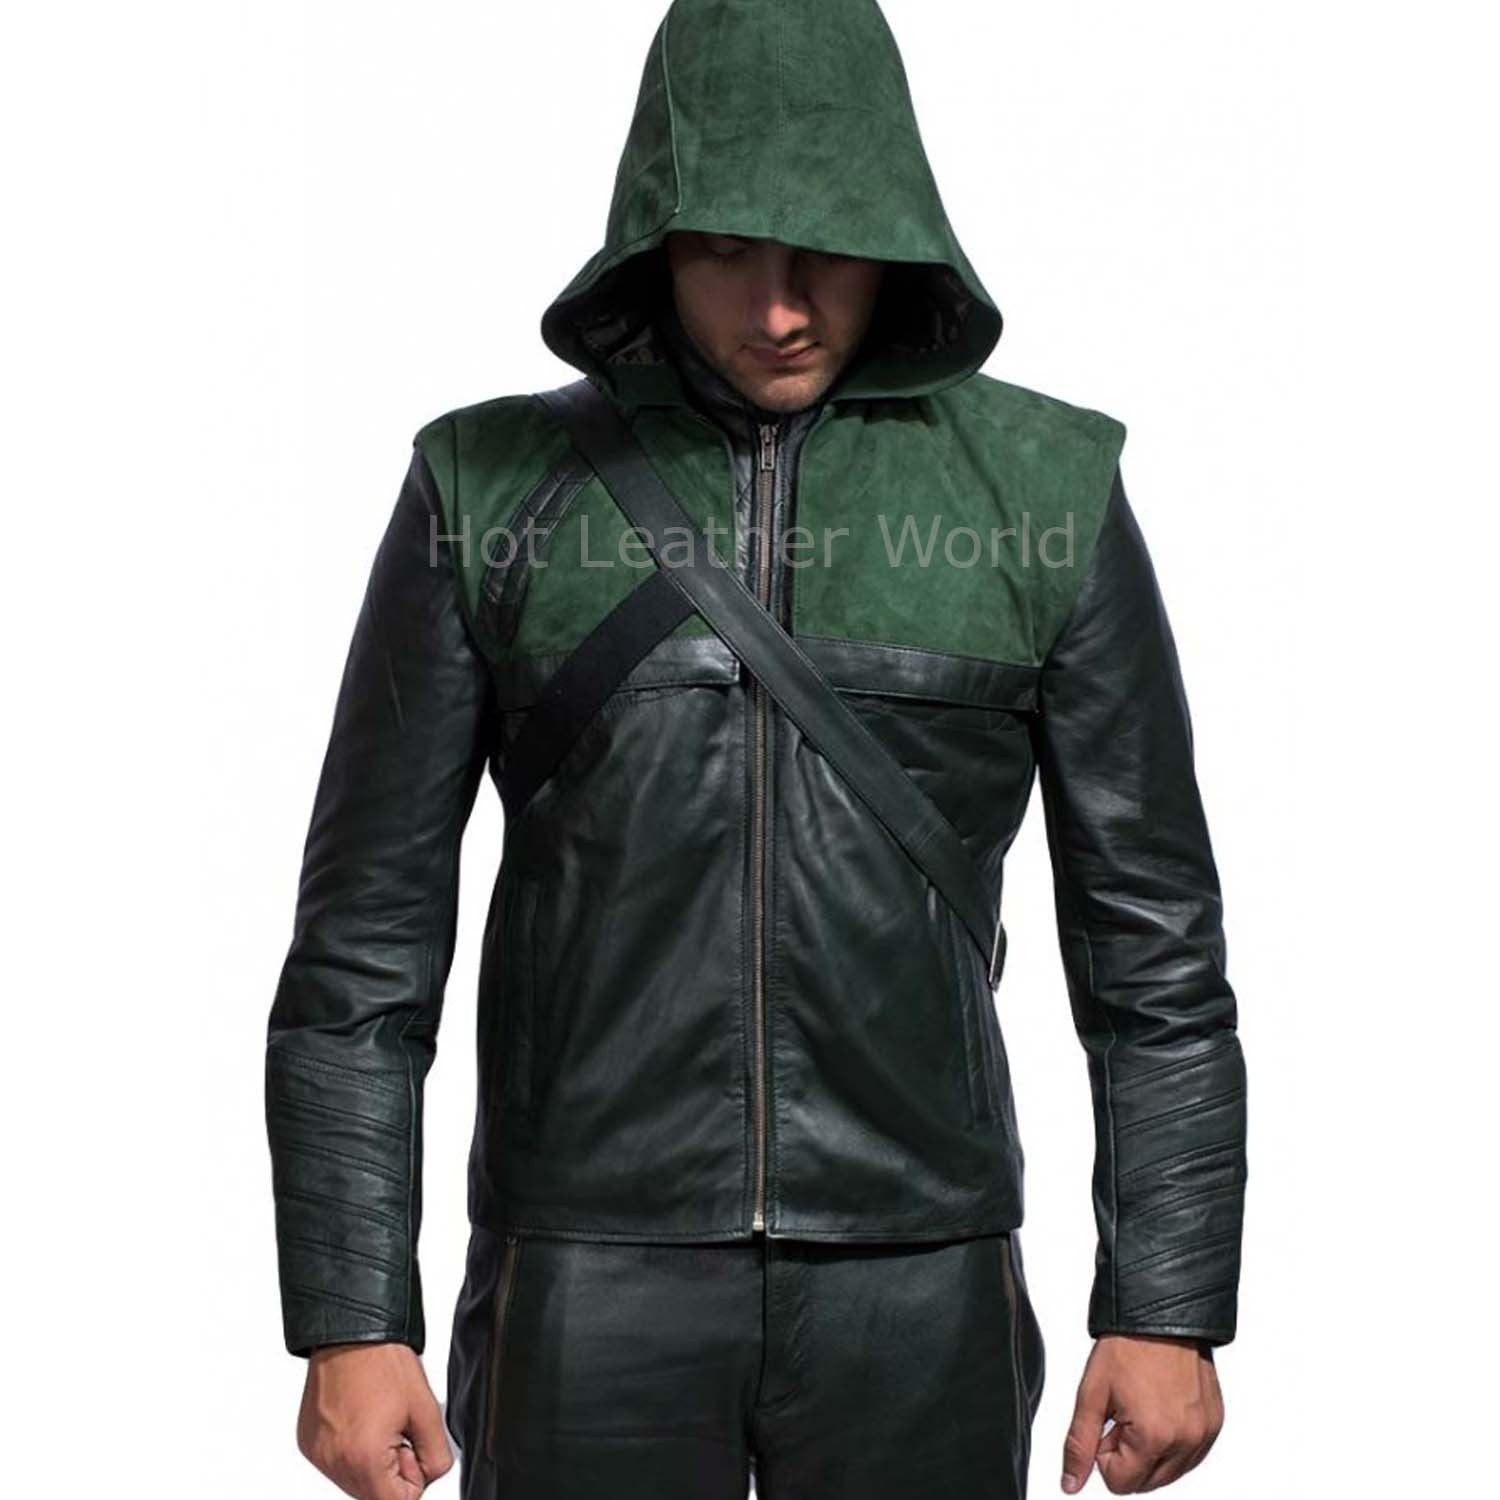 Stephen Amell Green Arrow Leather Replica Hoodie Jacket -  HOTLEATHERWORLD